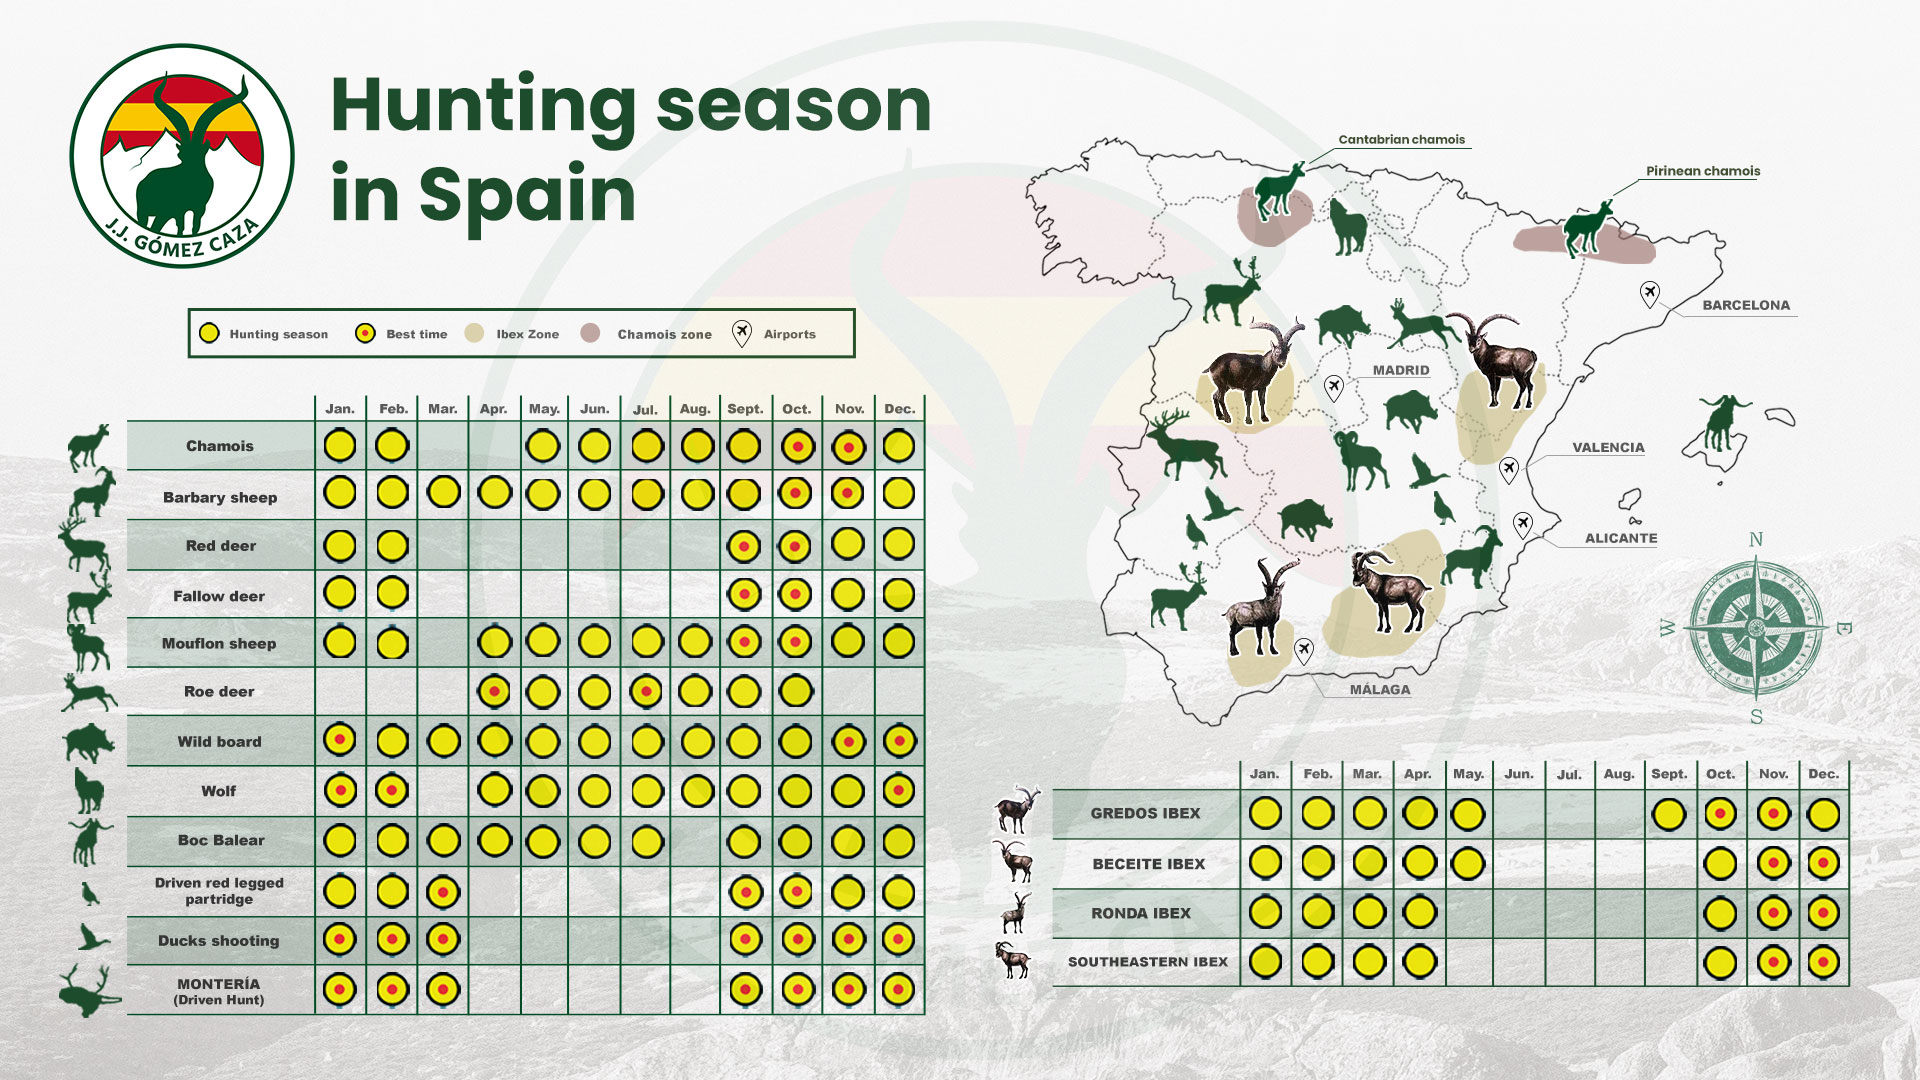 Hunting season in Spain, hunt in Spain, hunting in Spain